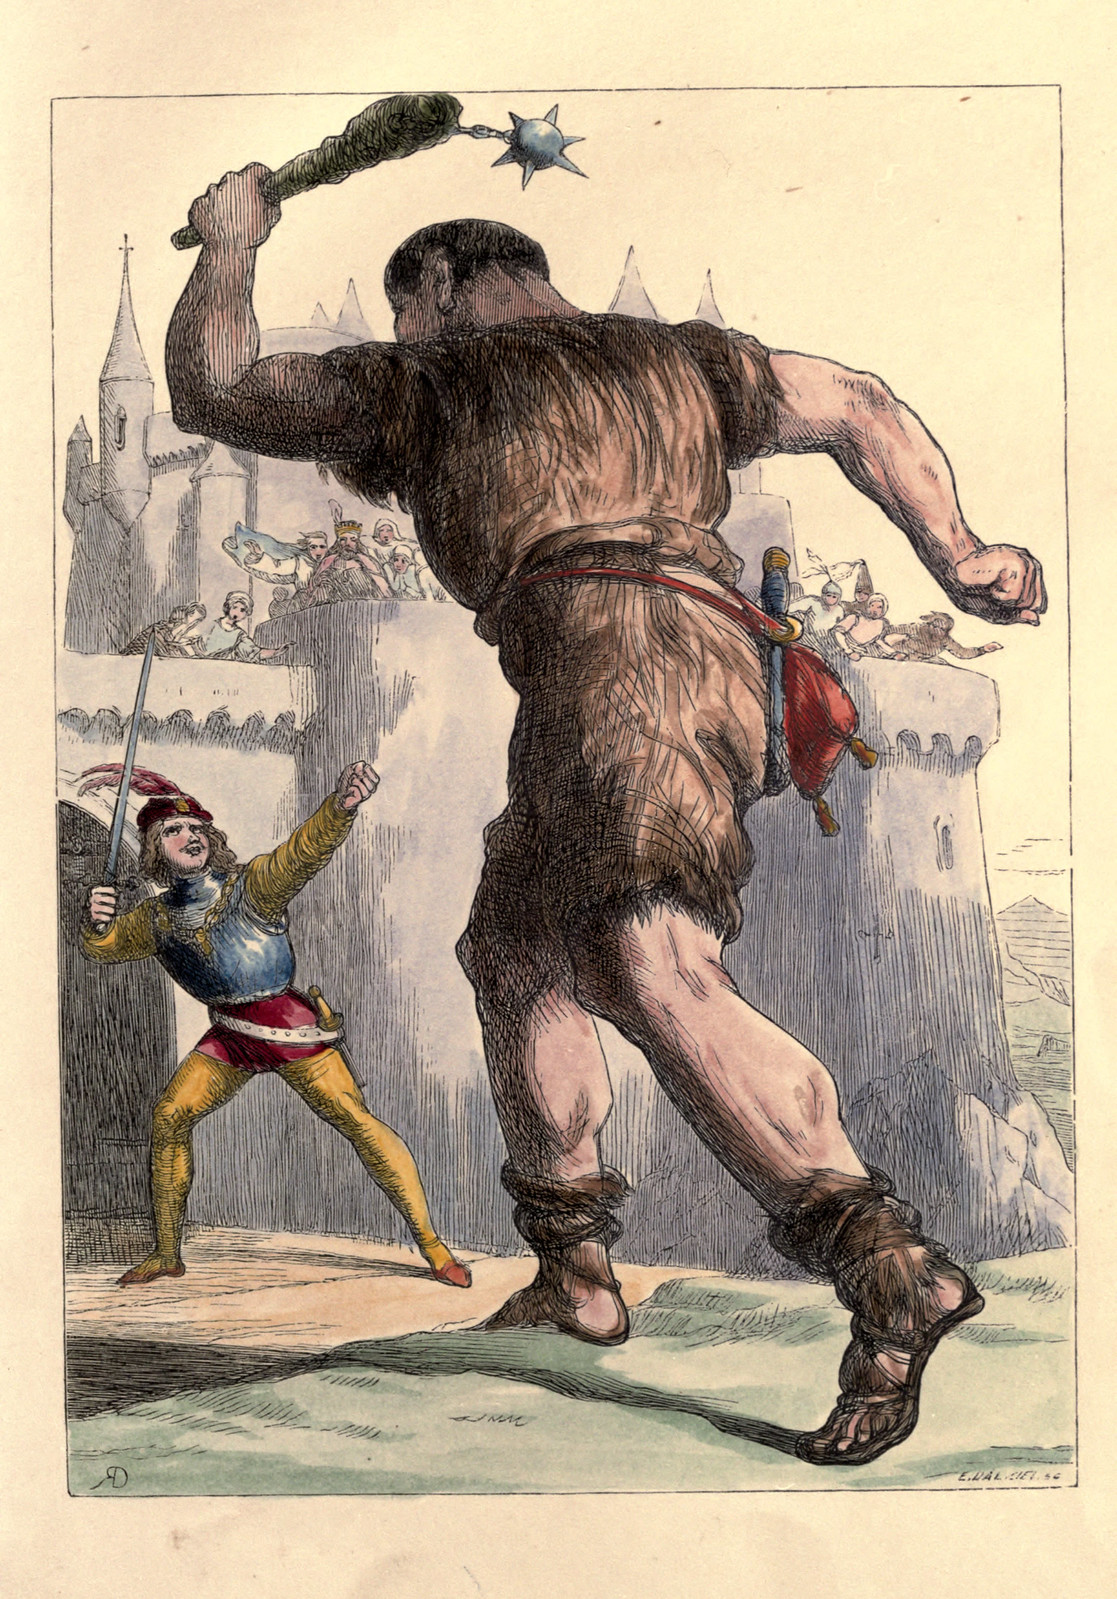 Richard Doyle - The Story of Jack and the Giant, 1851, Illustration 09